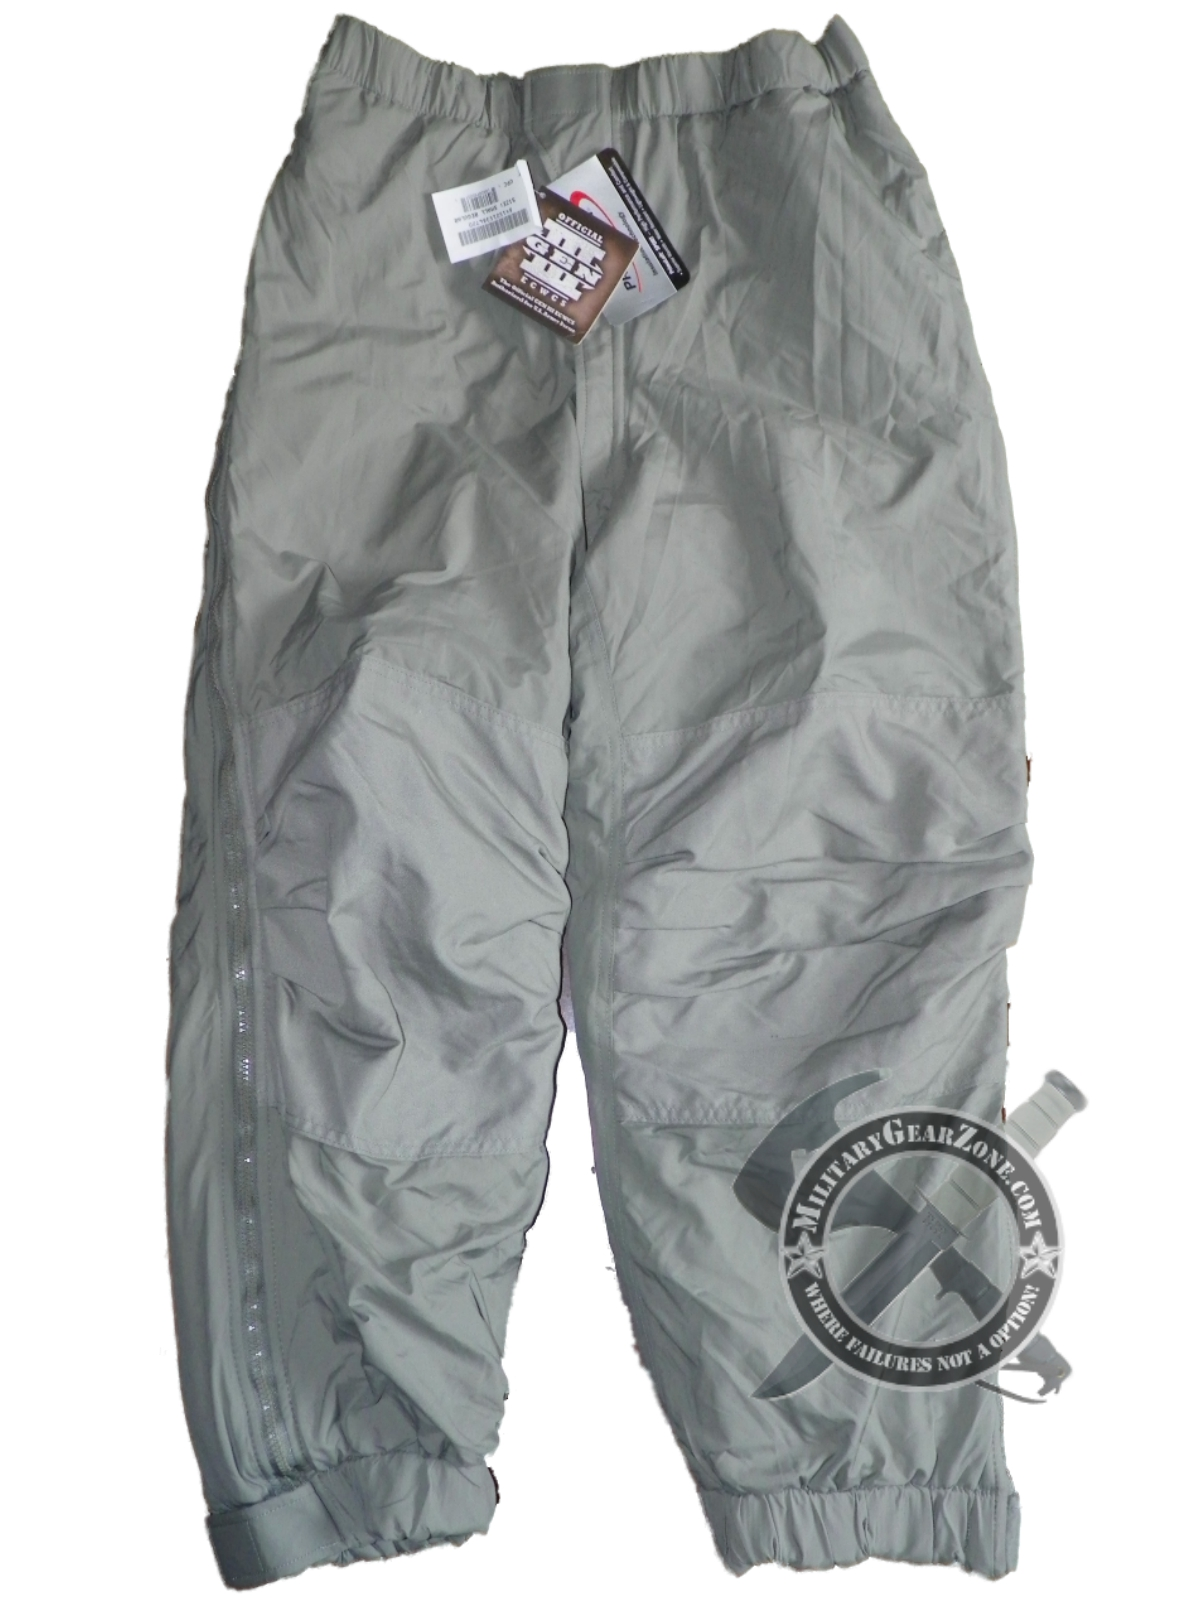 Gen-III-USGI-Trouser-L-7-Extreme-Cold-Weather-Primaloft-ECW-Insulated-Pants-New